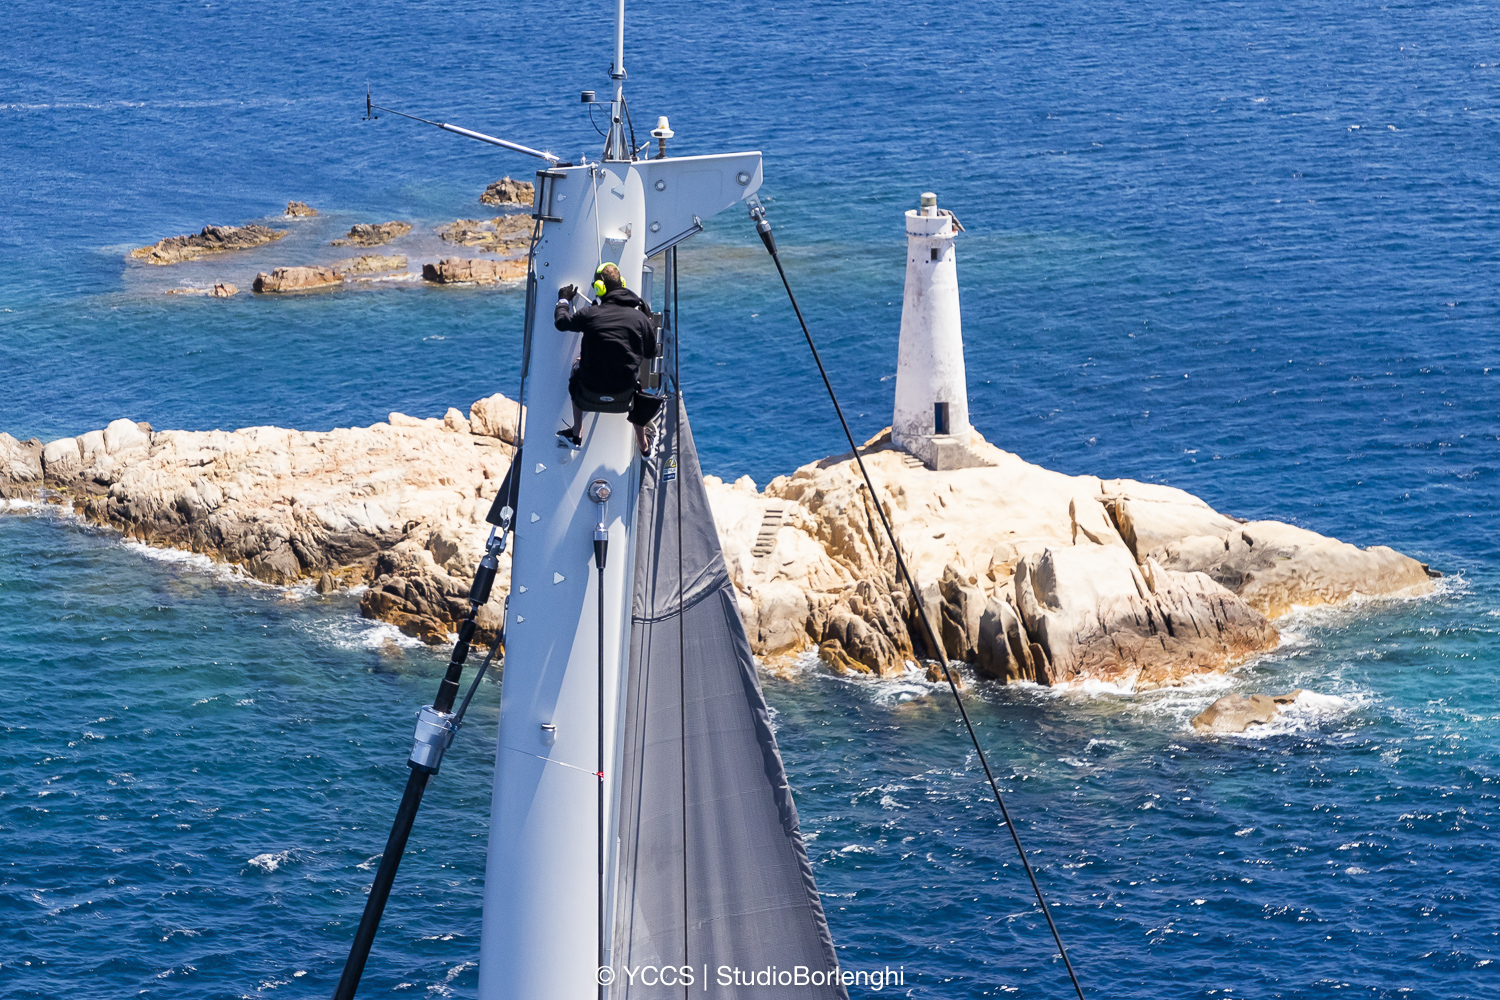 Online il video highlights della Loro Piana Superyacht Regatta 2018 - NEWS - Yacht Club Costa Smeralda